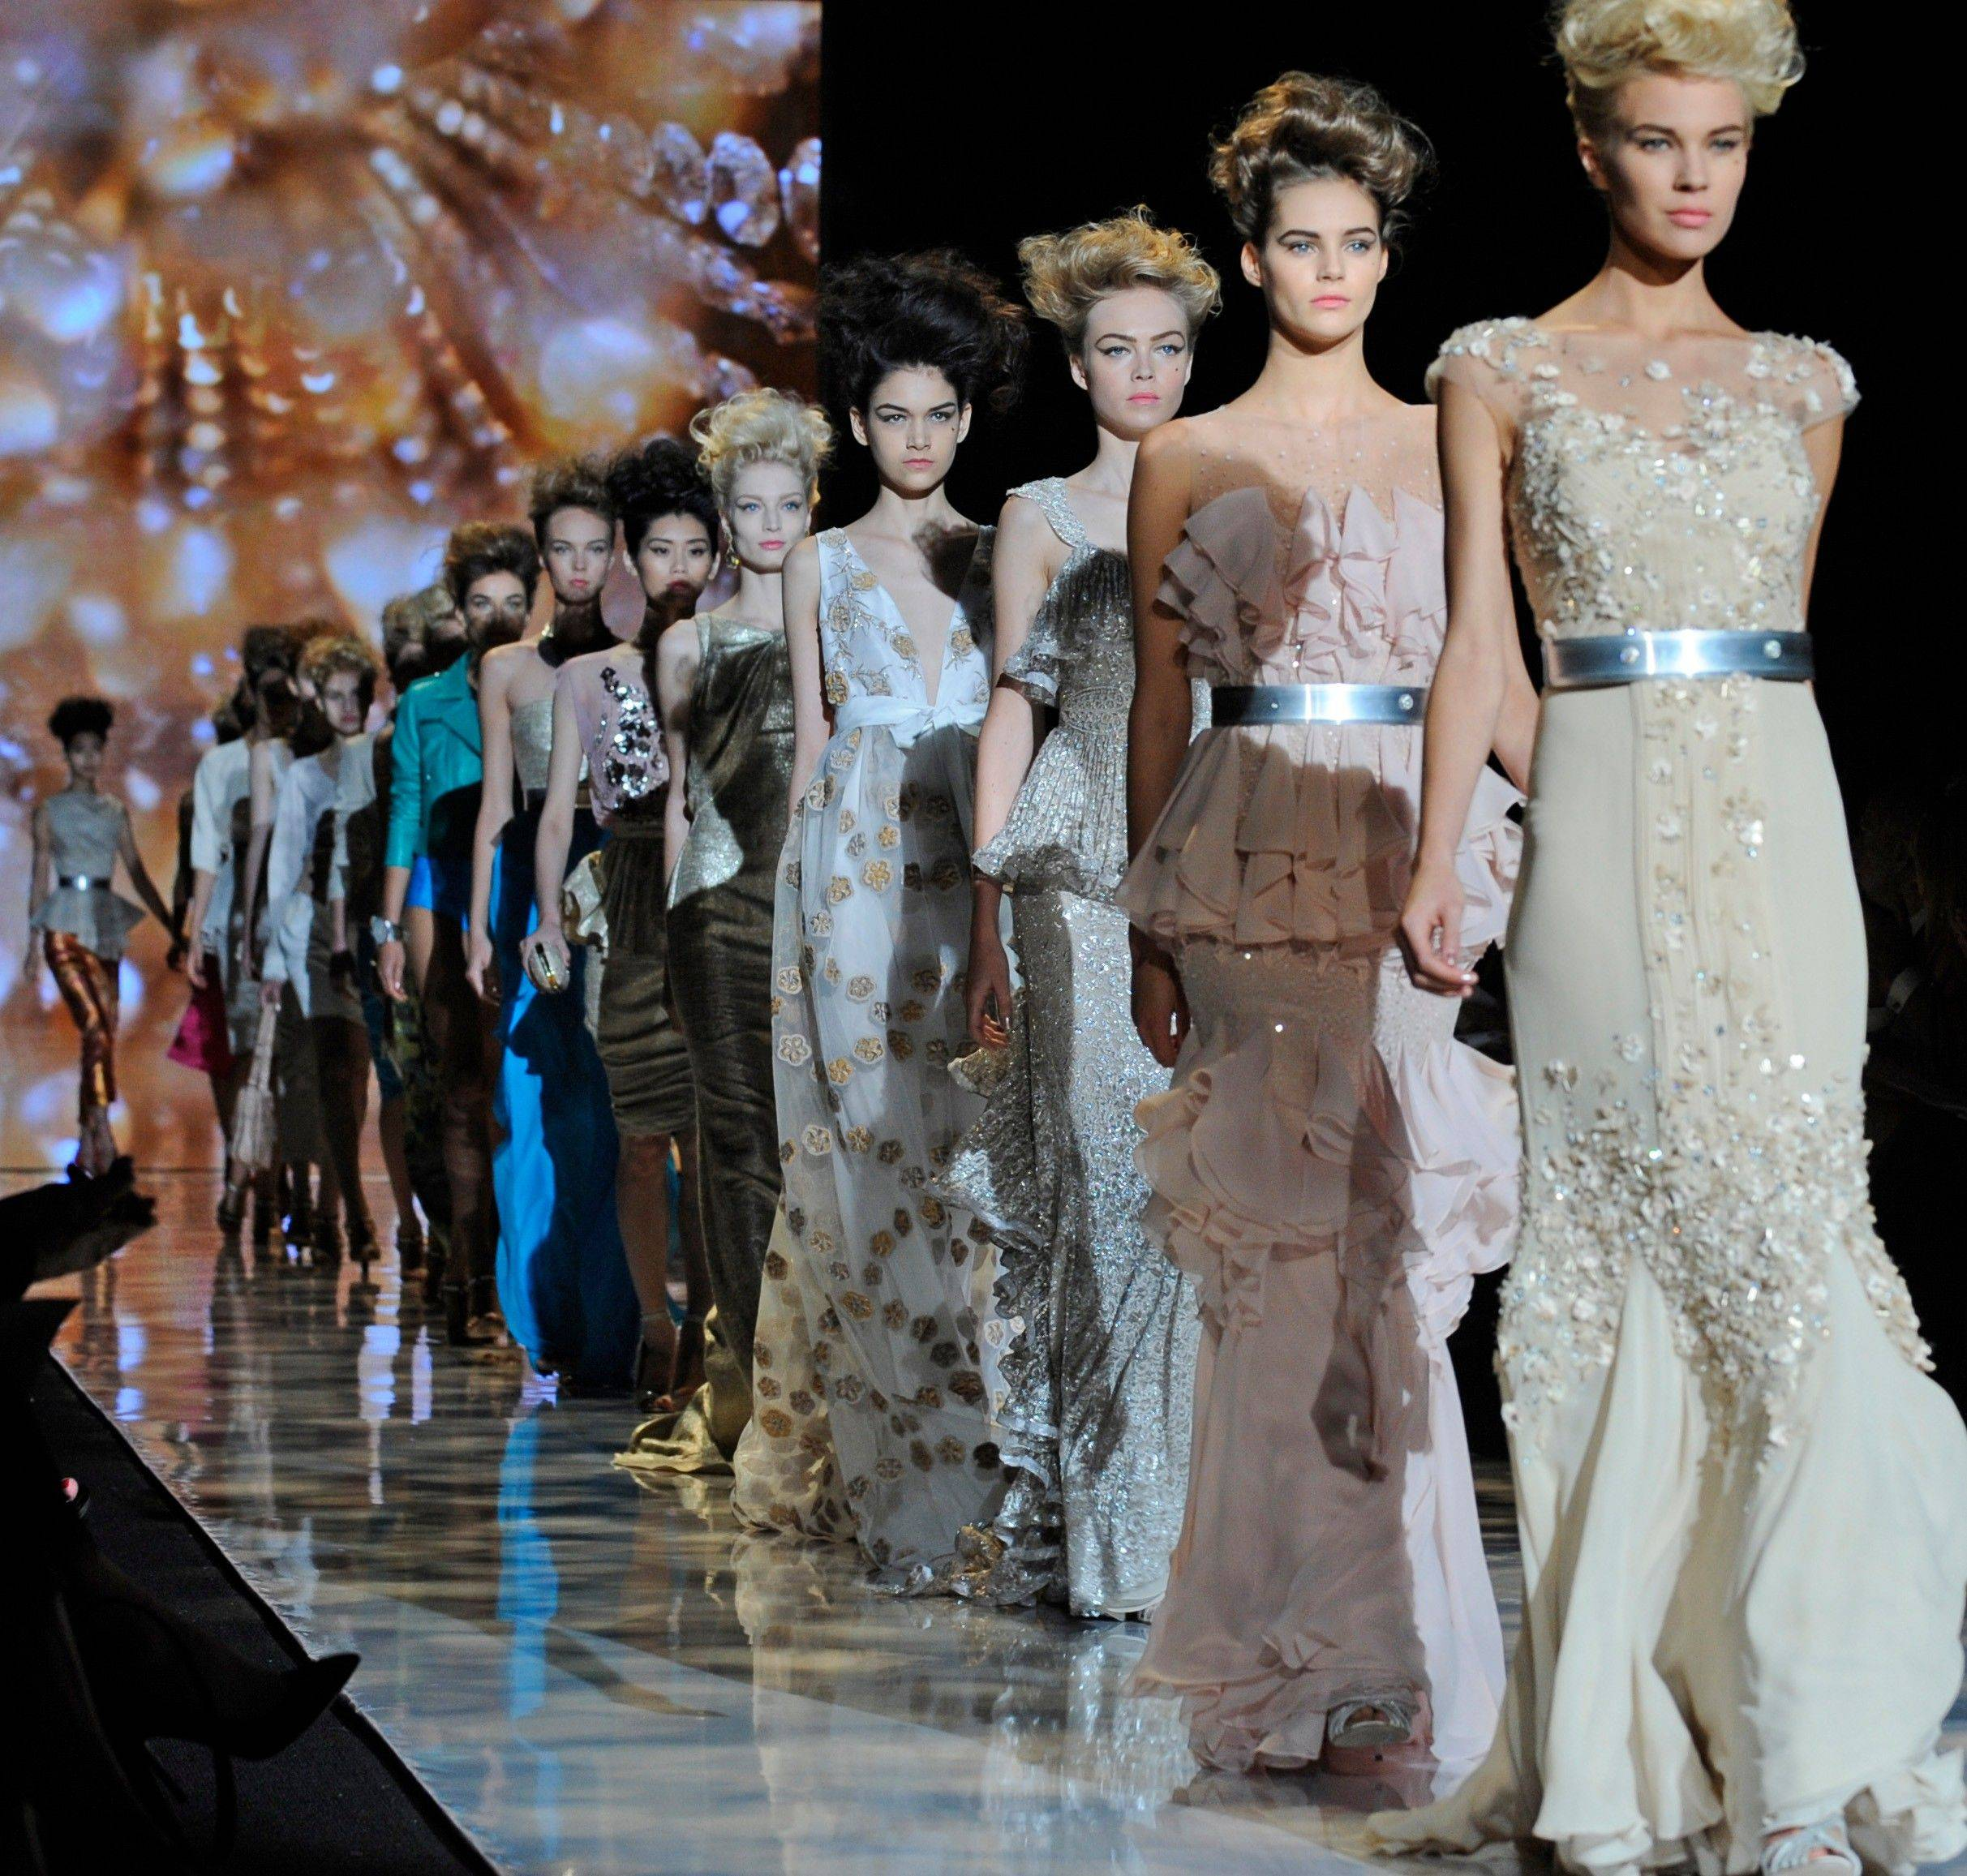 The Badgley Mischka Spring 2012 collection is modeled during Fashion Week, Tuesday, Sept. 13, 2011, in New York.